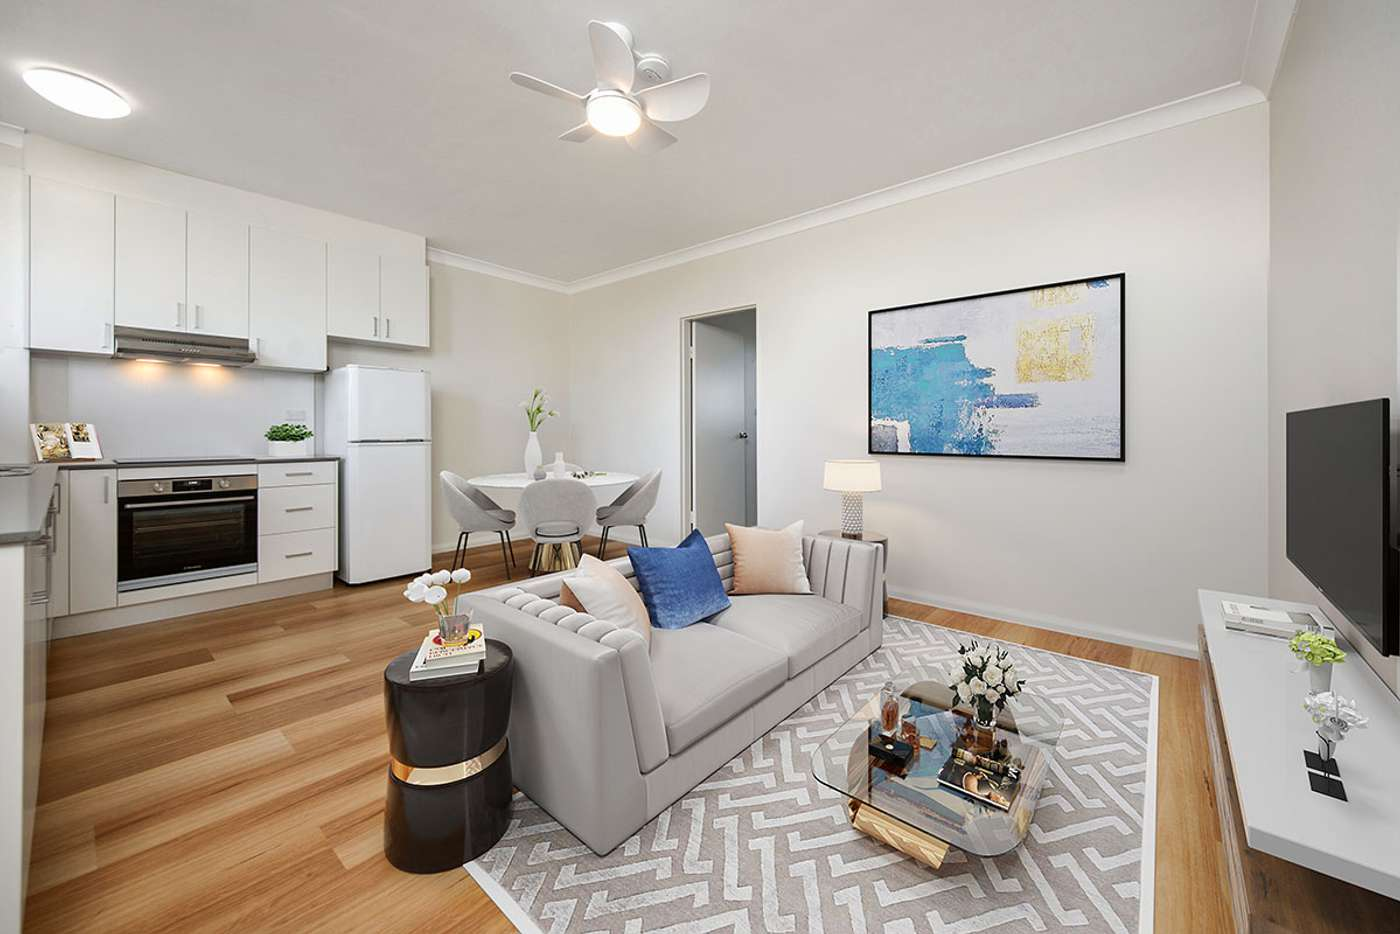 Main view of Homely apartment listing, 39/134-138 Redfern Street, Redfern NSW 2016